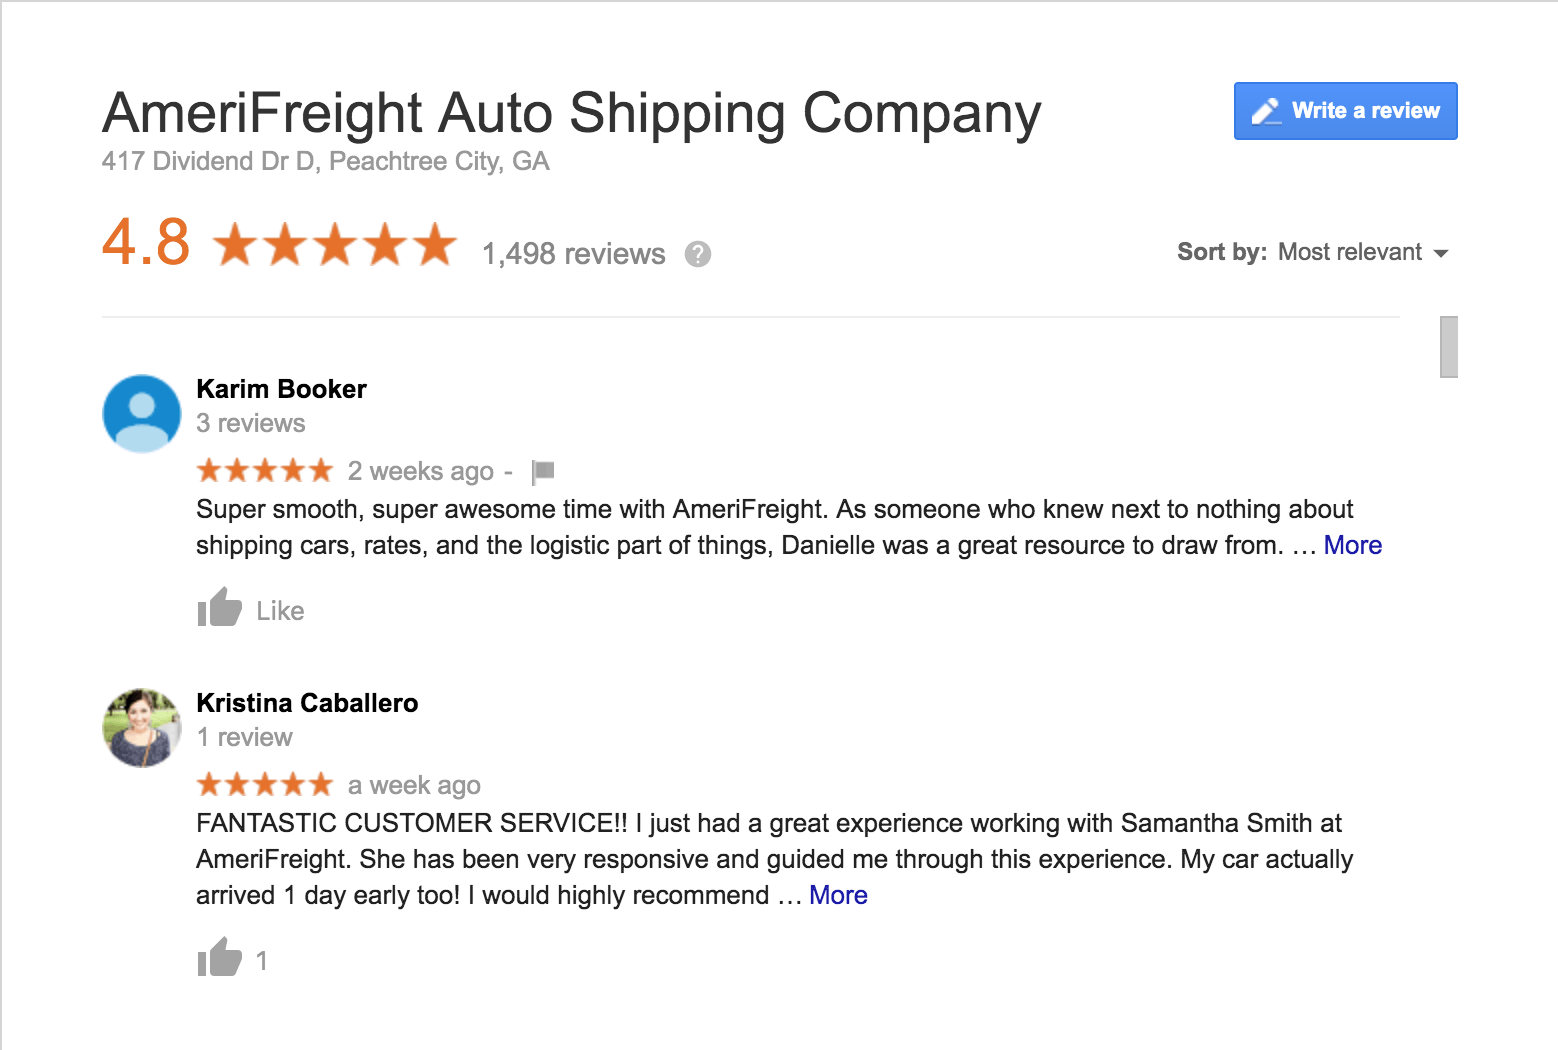 AmeriFreight Online Reputation and Reviews